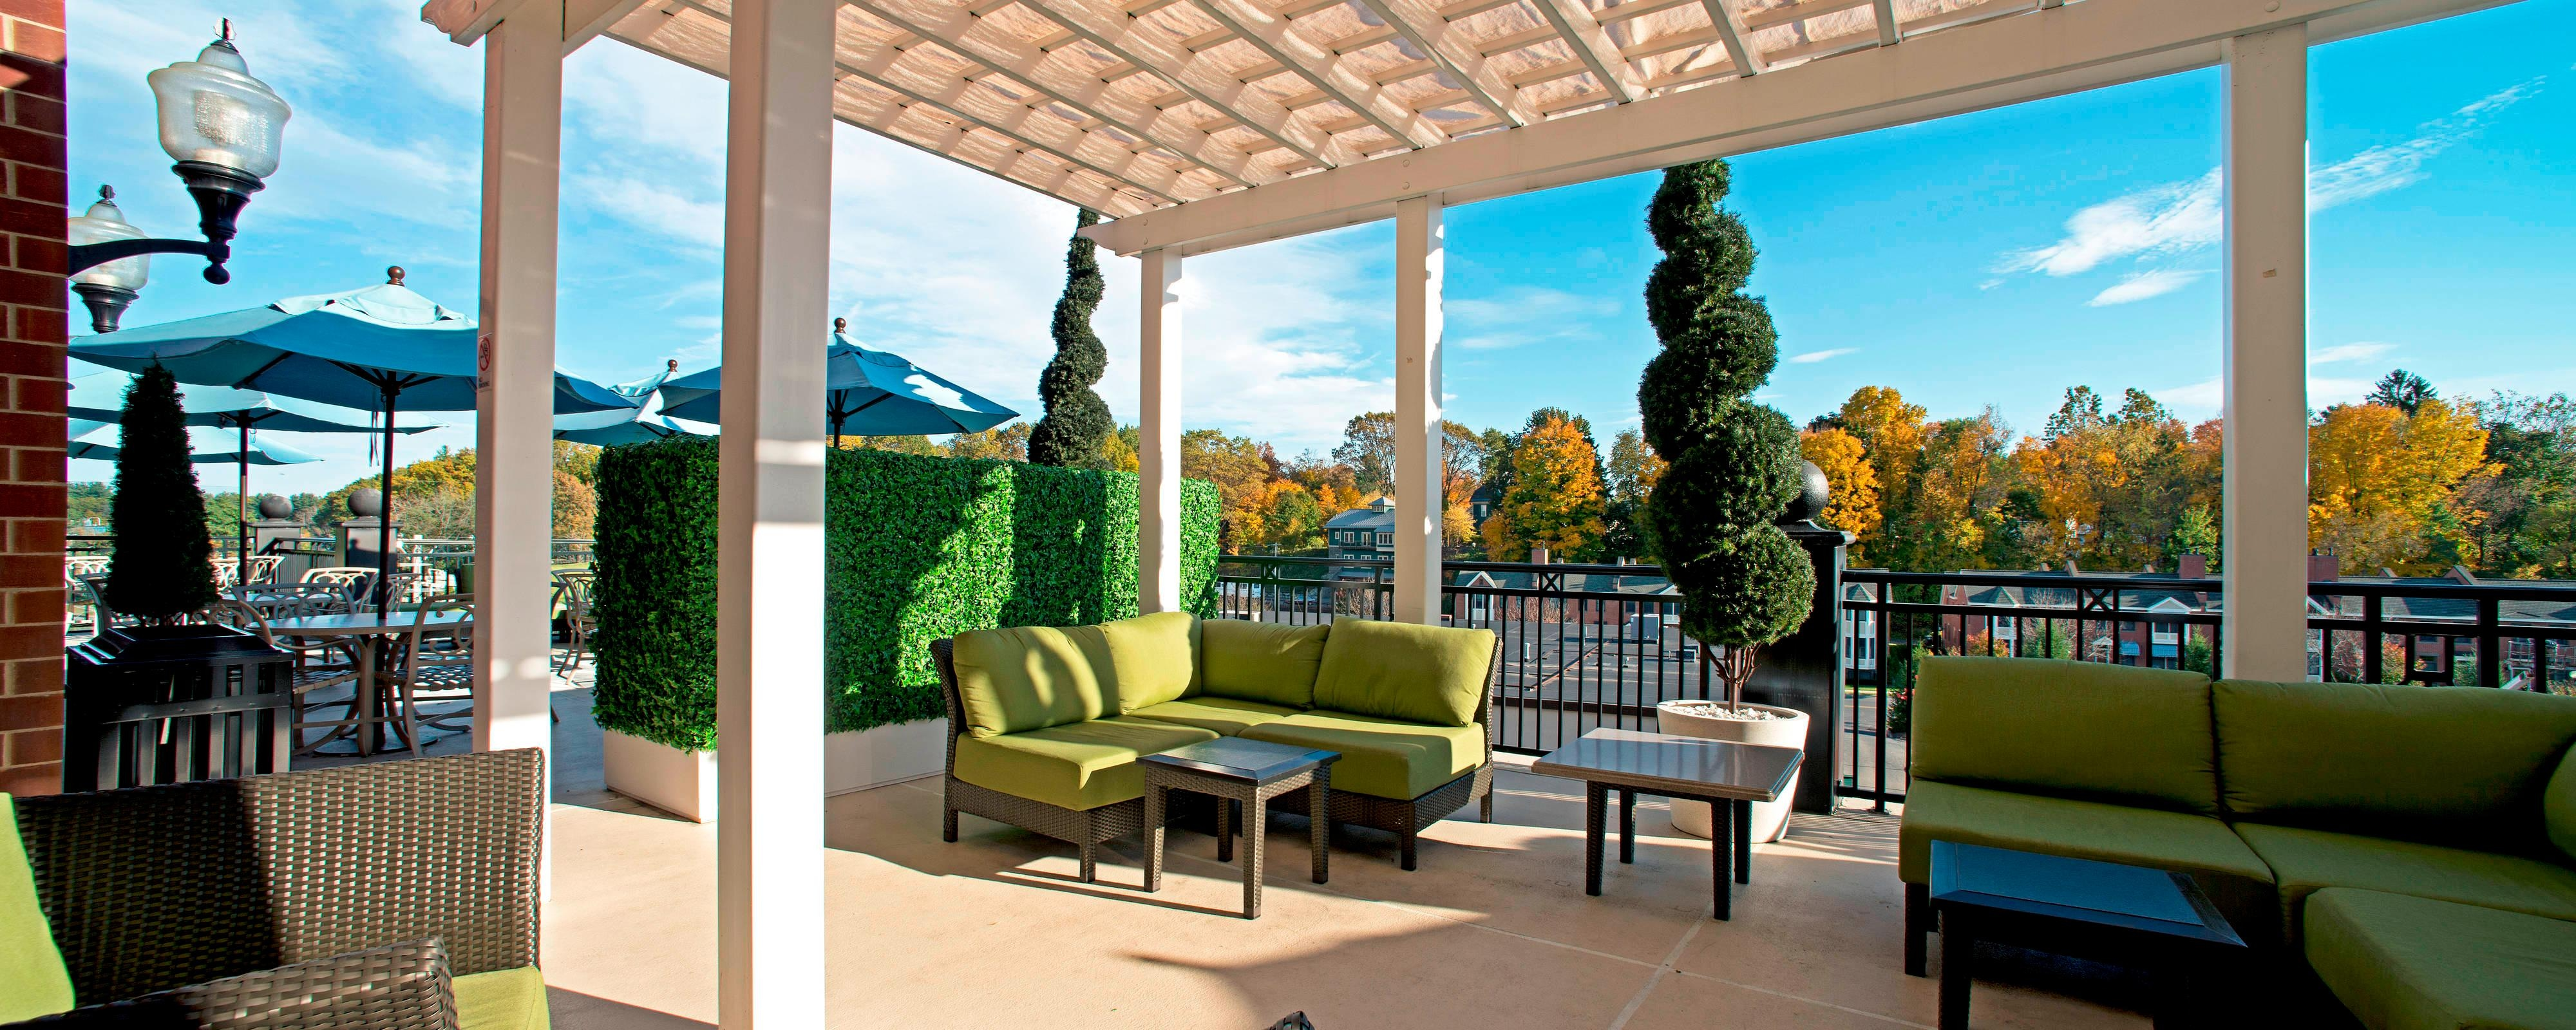 Saratoga Springs NY hotel outdoor terrace